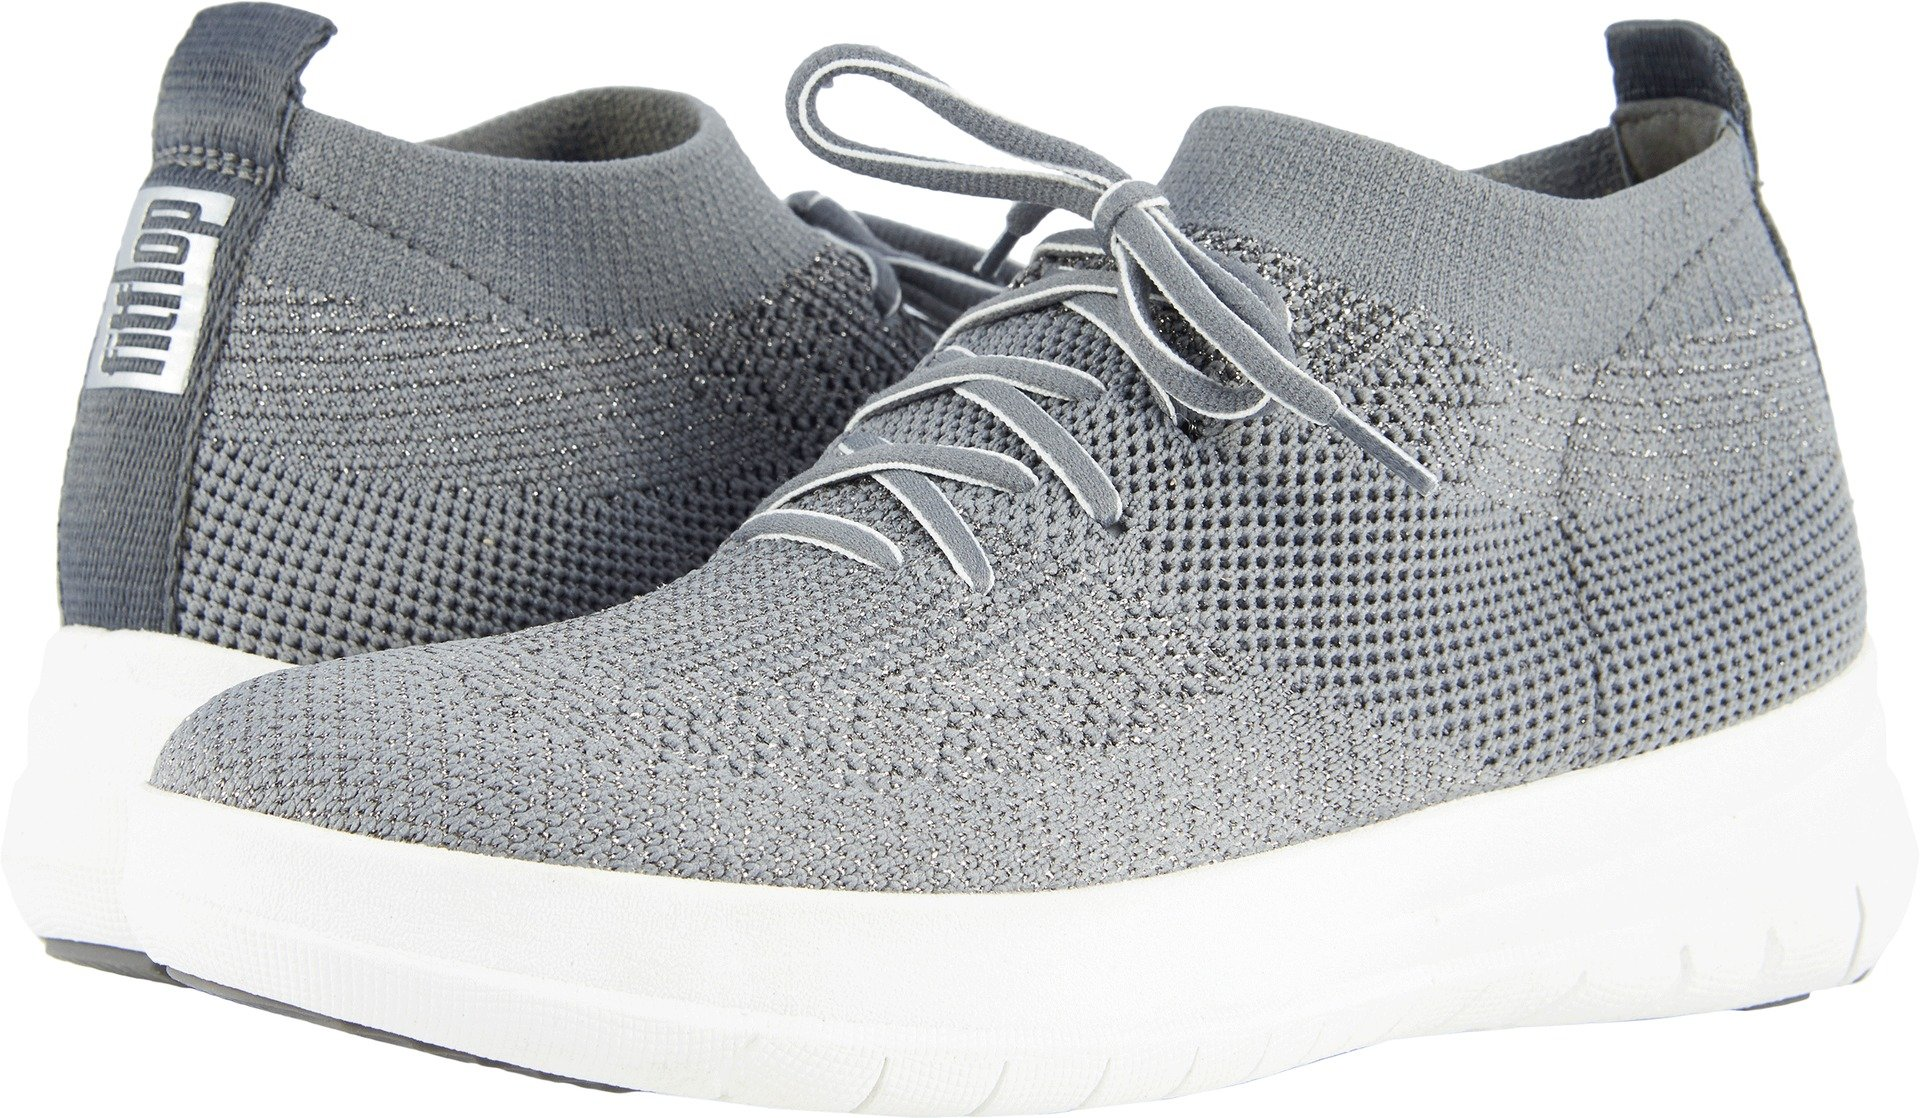 FitFlop Women's Uberknit Slip-On High-Top Sneaker Charcoal/Metallic Pewter 11 M US by FitFlop